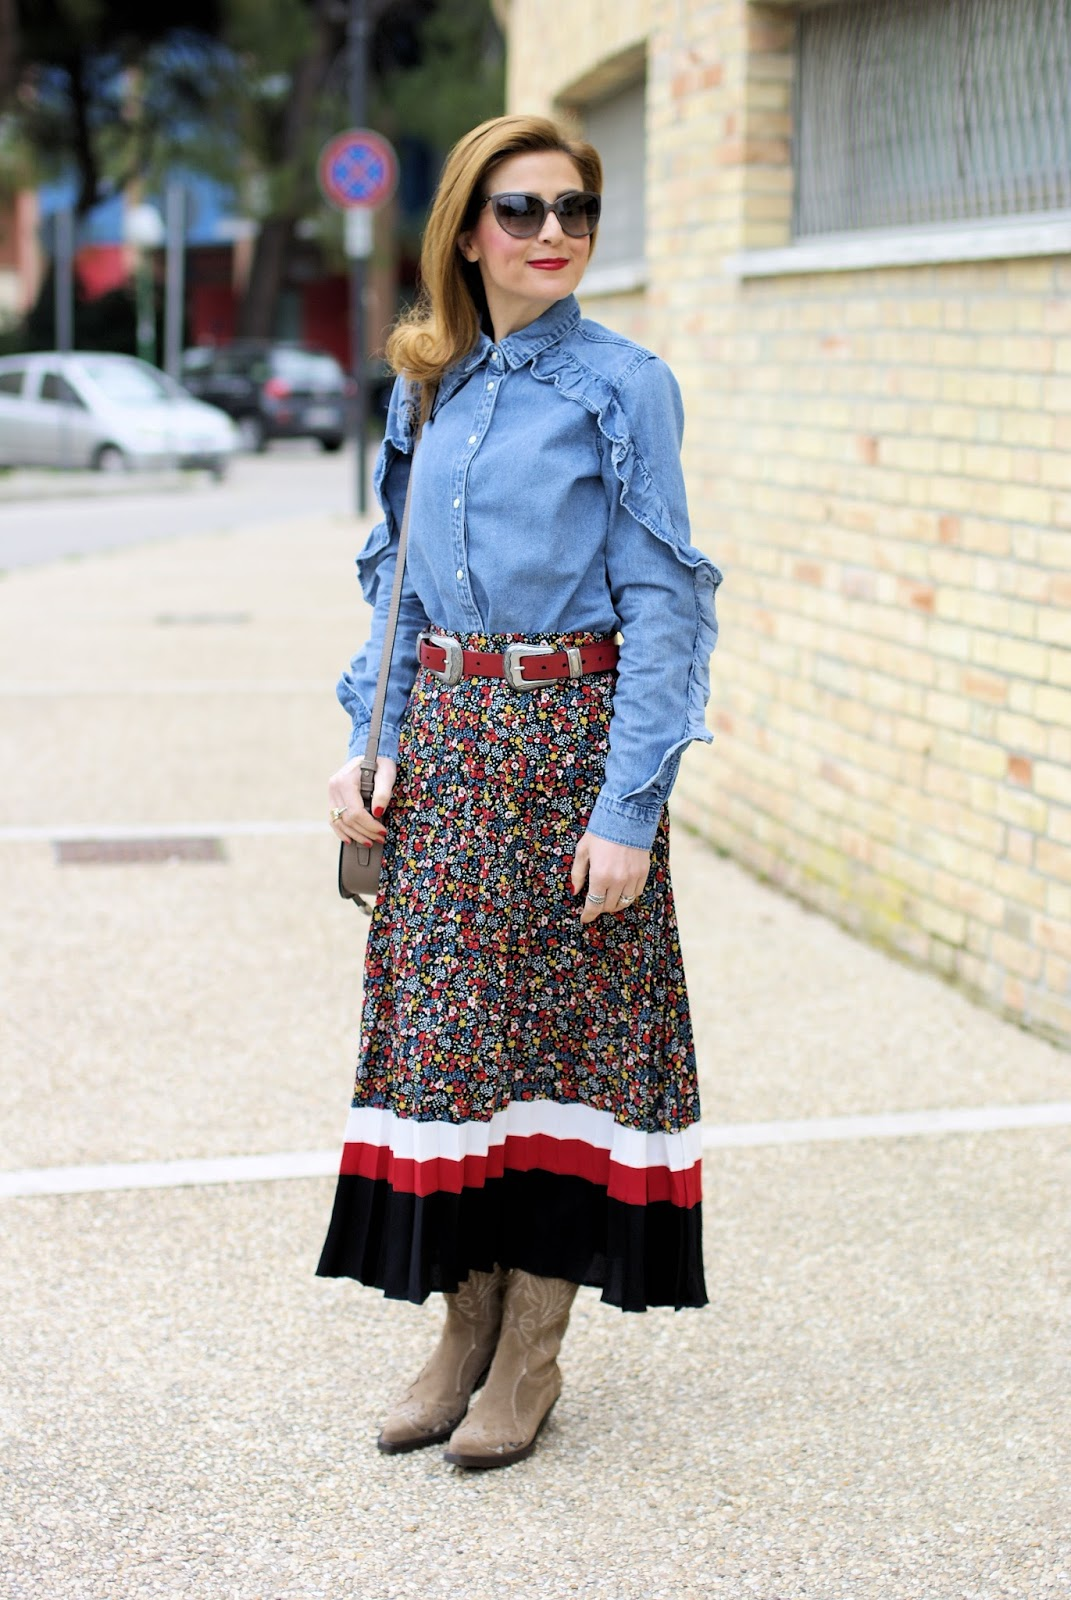 Texan boots and floral skirt on Fashion and Cookies fashion blog, fashion blogger style